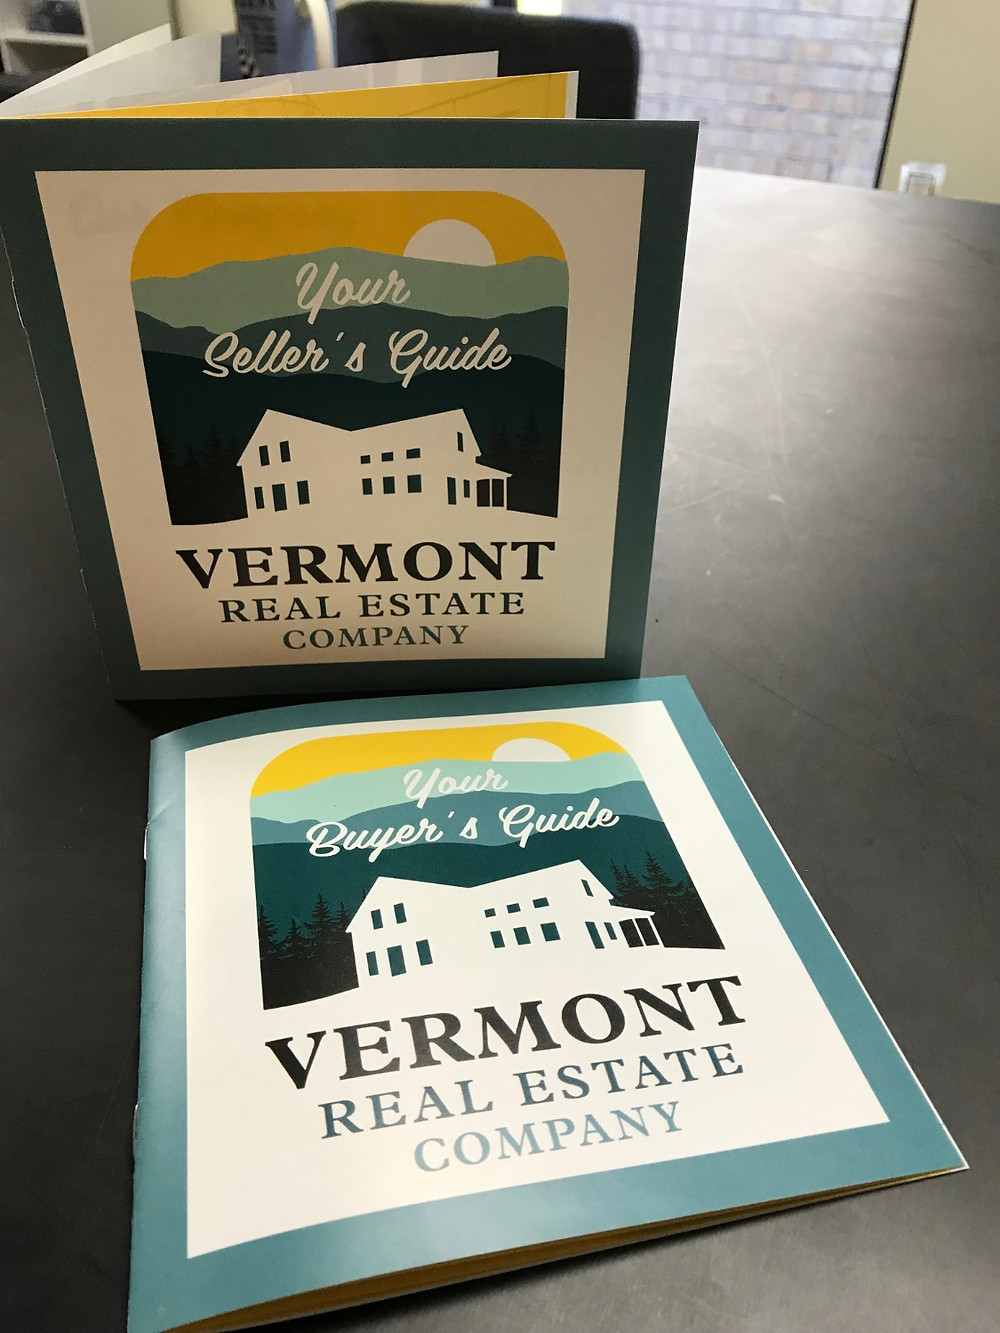 Vermont Real Estate Company branded guides